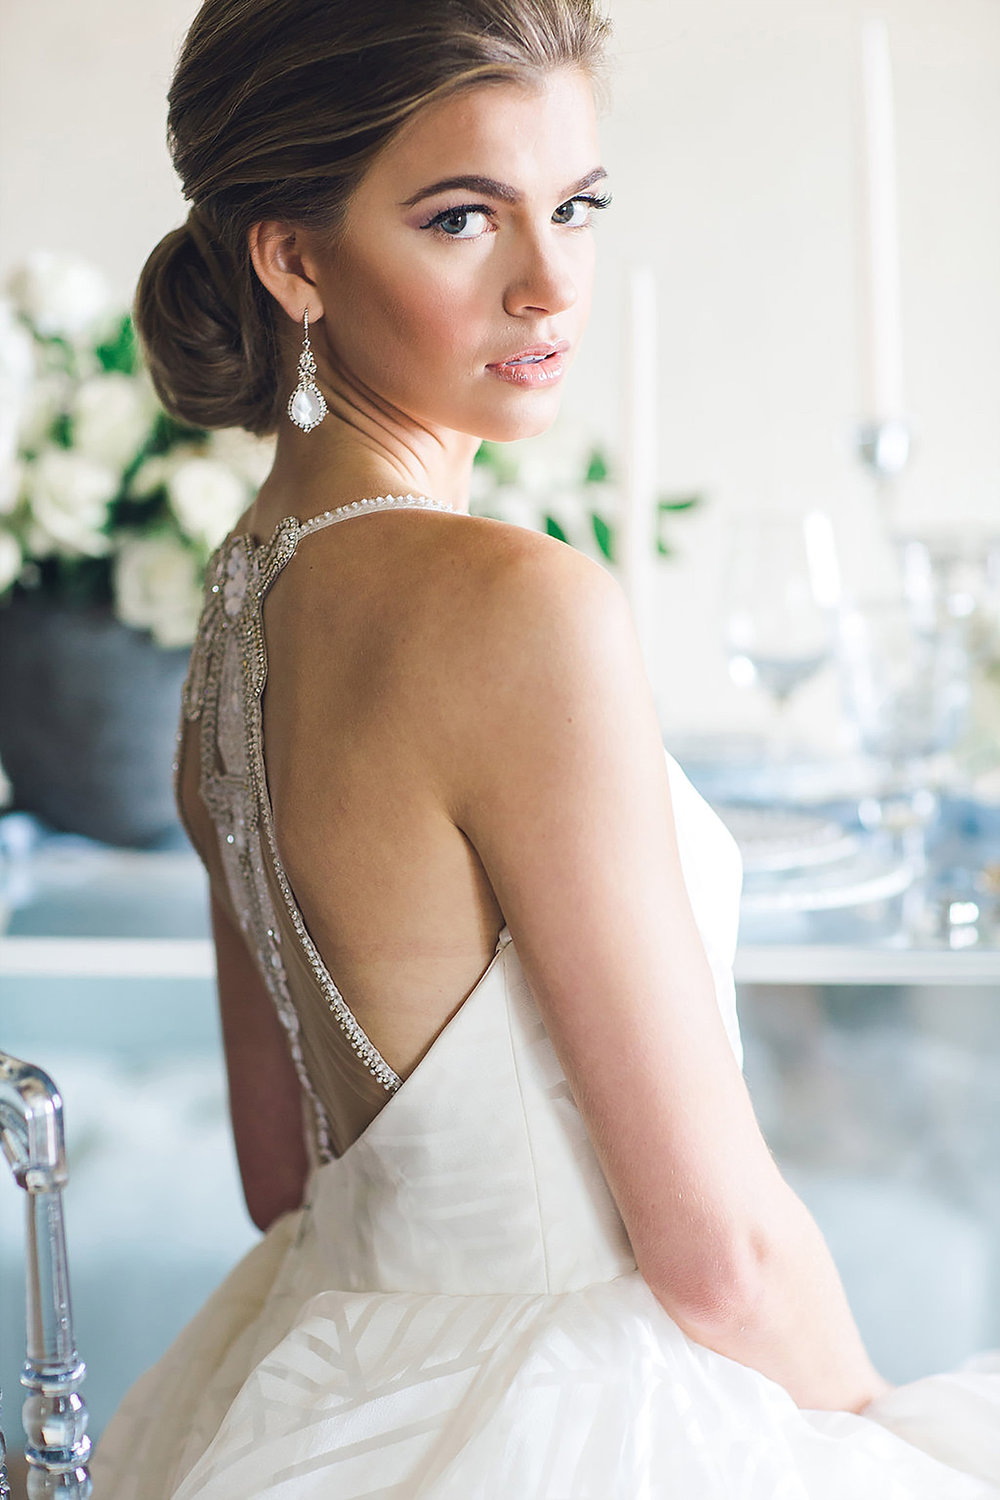 Bride wearing Haley Paige and Haute bride with a southern updo